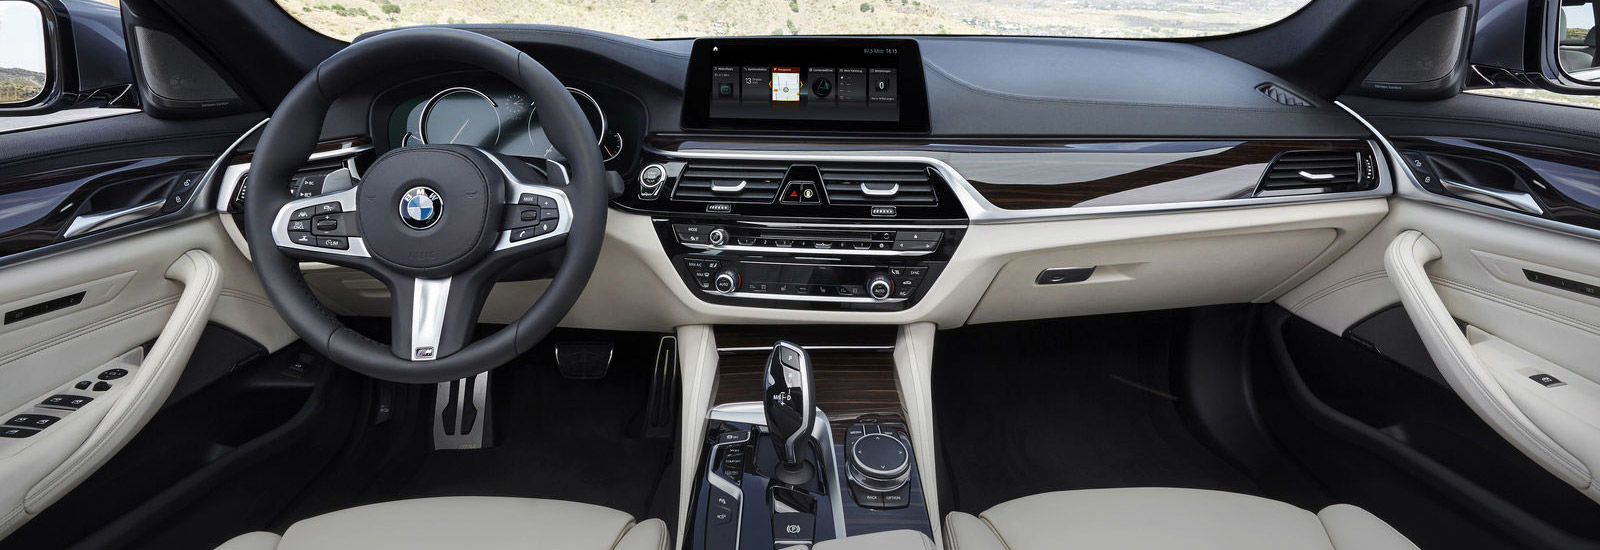 Bmw G30 Release Date Release Date Price And Specs 2017 2018 Best Cars Reviews